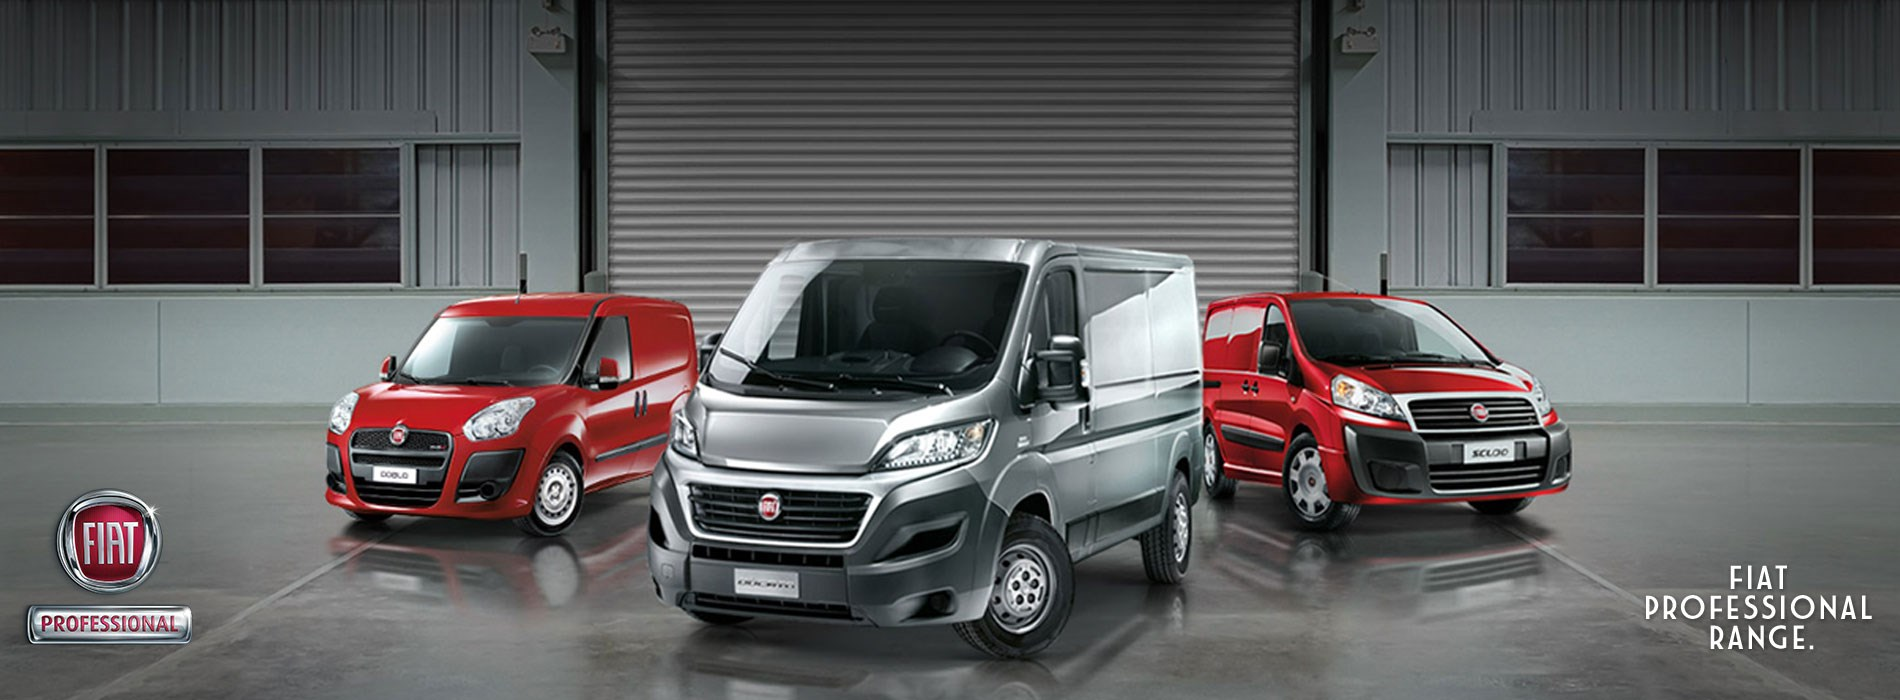 Fiat Professional Lineup